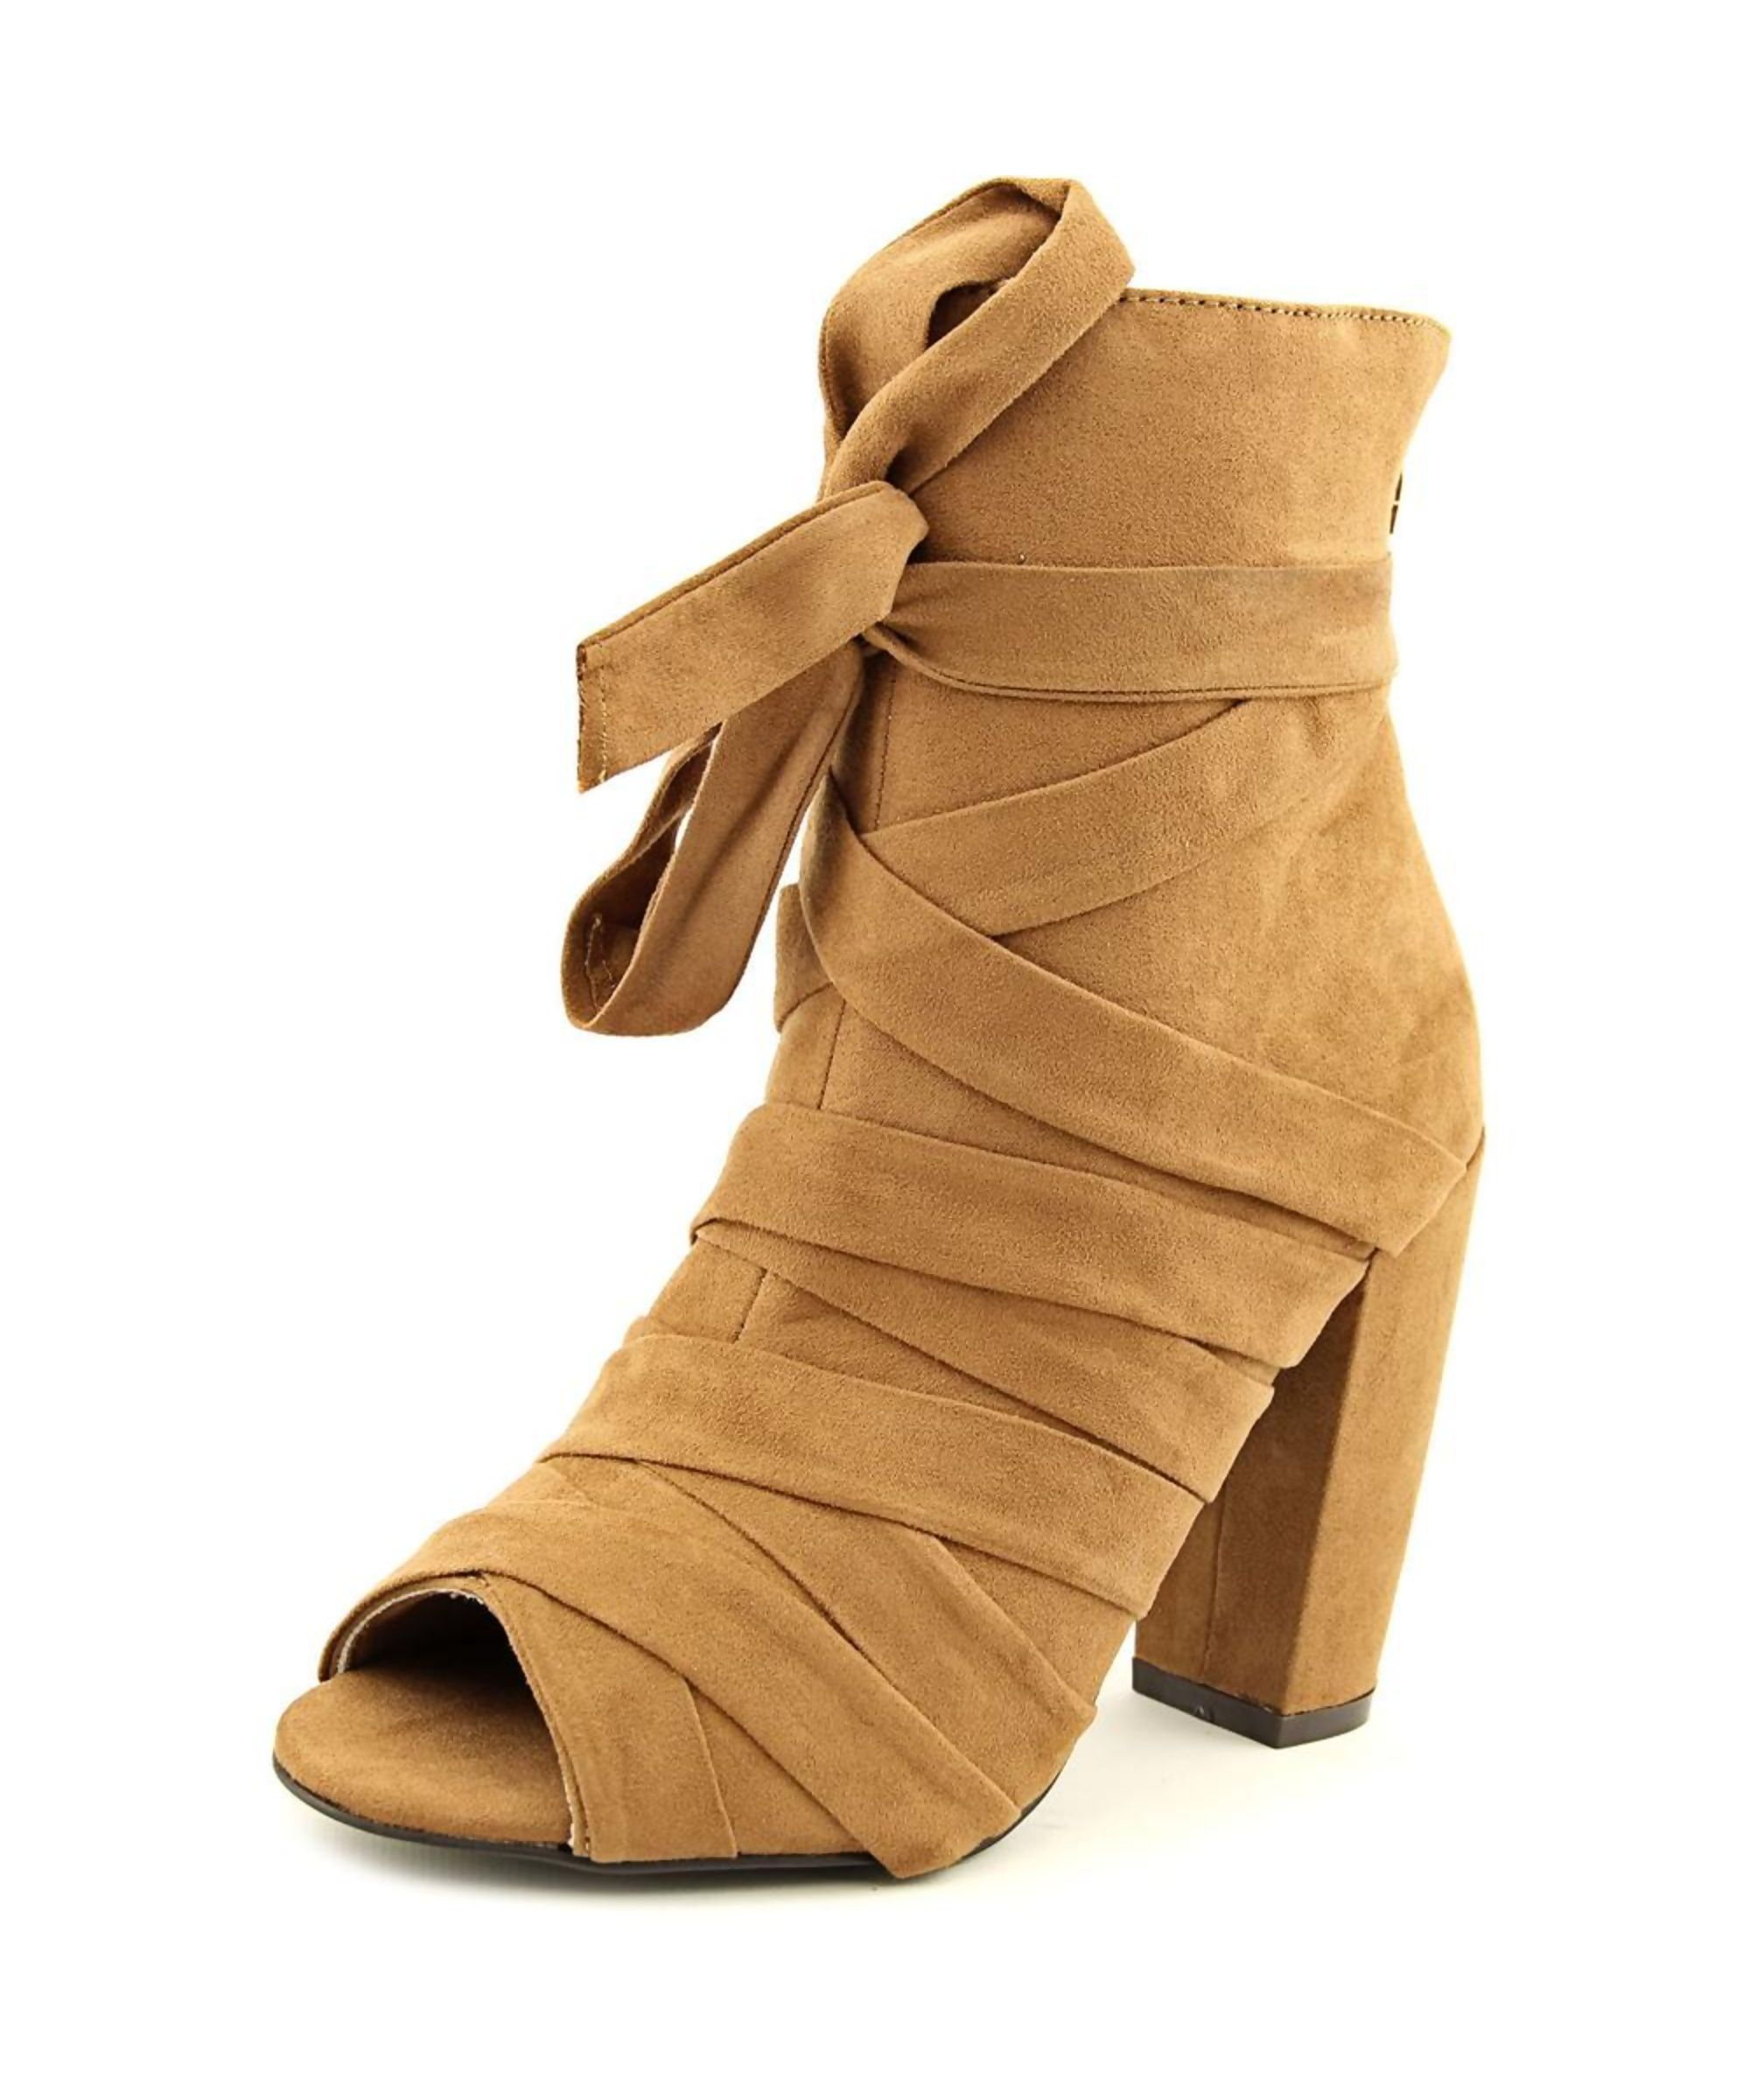 2 Lips Too Too Giselle Women's ... Ankle Boots LL4NY60